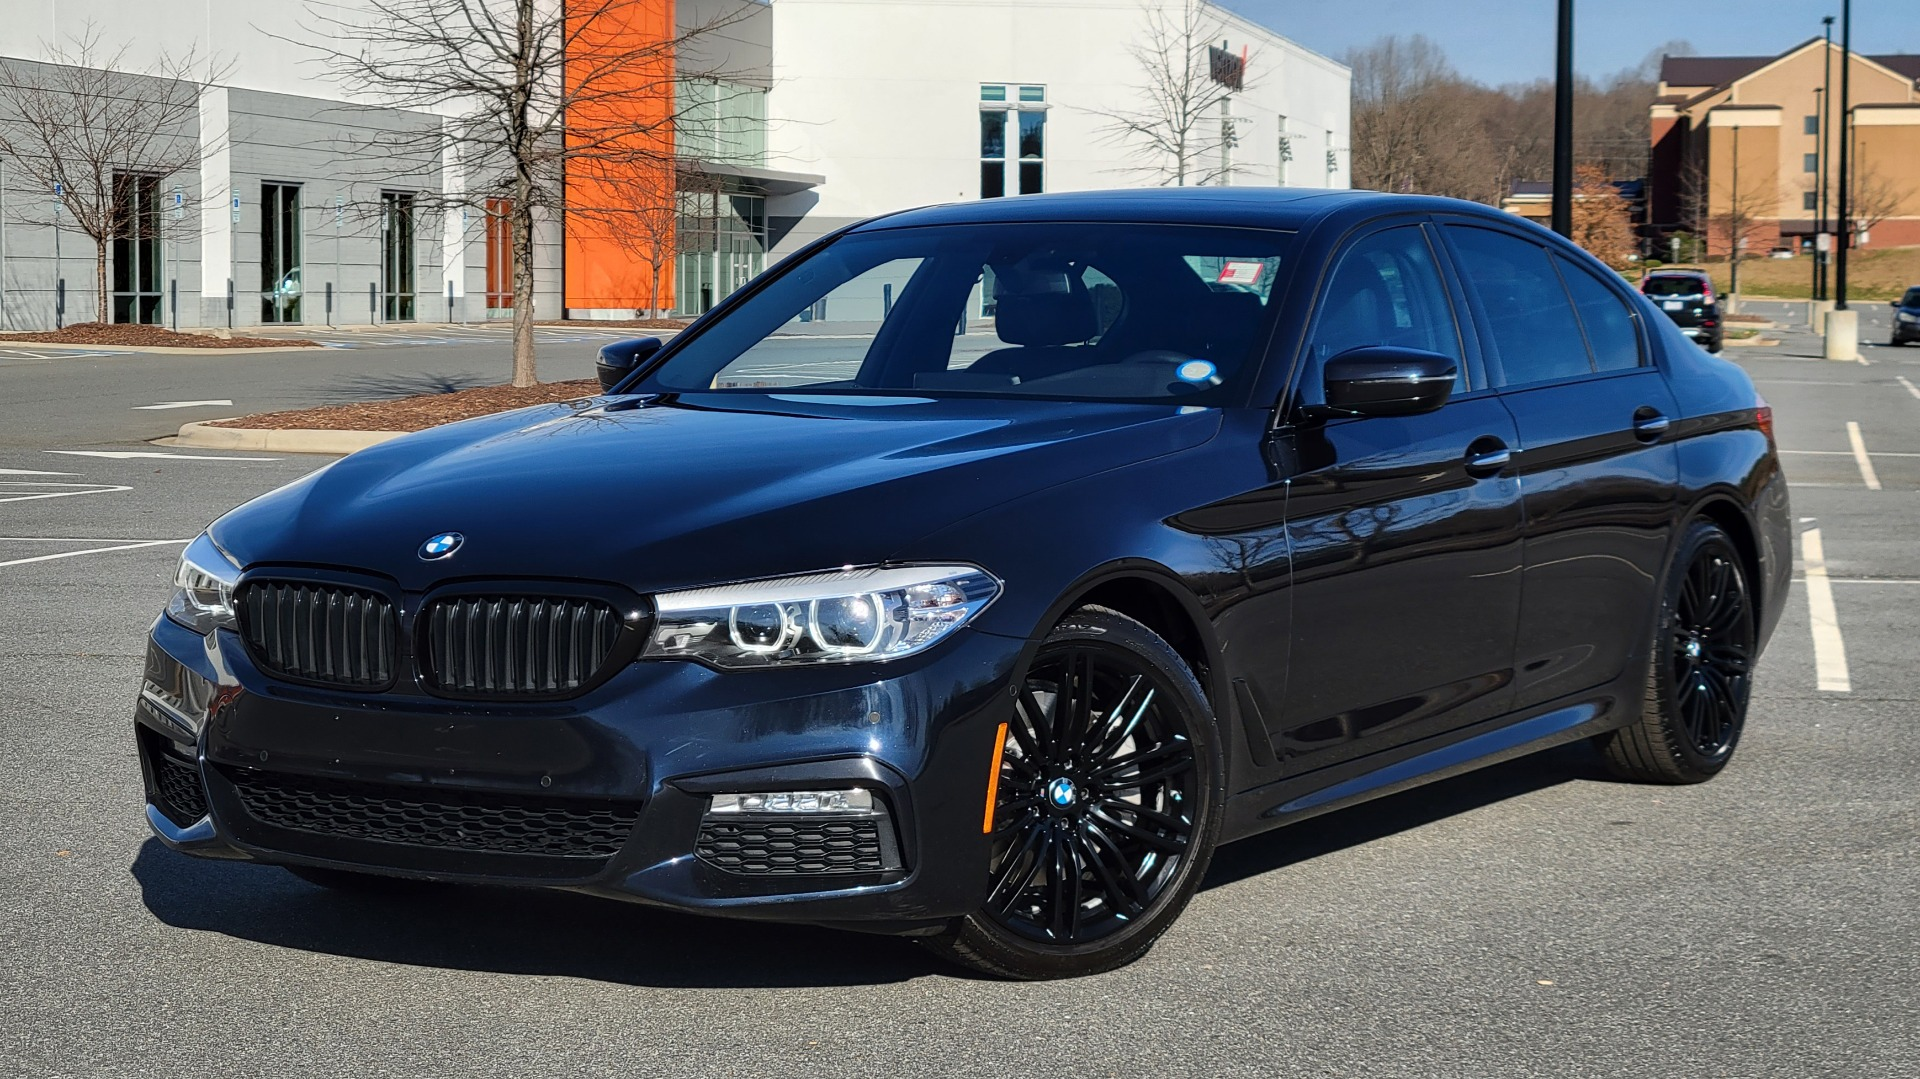 Used 2018 BMW 5 SERIES 540I XDRIVE / M-SPORT / NAV / WIFI / SUNROOF / REARVIEW for sale $36,773 at Formula Imports in Charlotte NC 28227 2